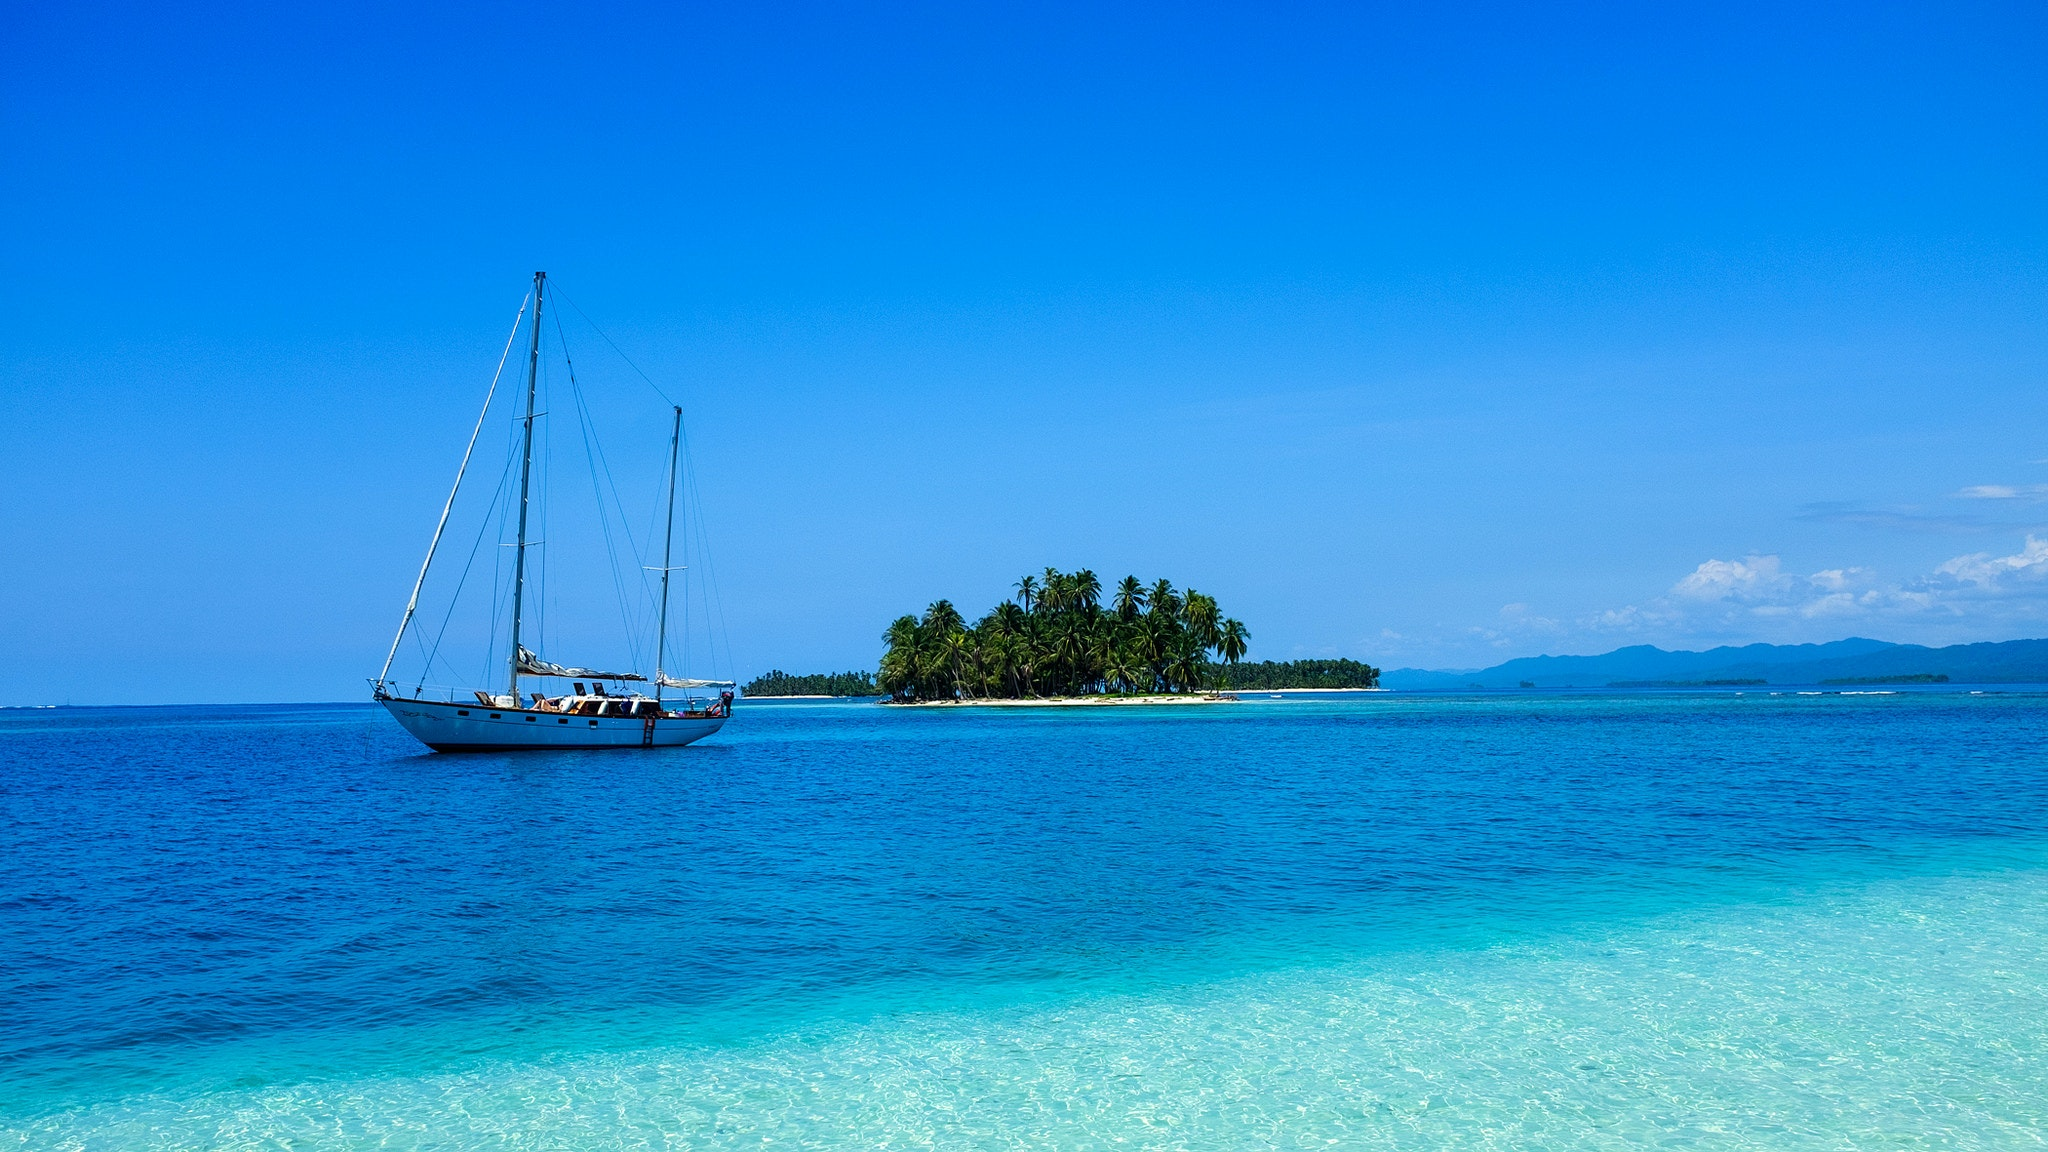 The San Blas Islands are on the Panama side of the Caribbean.